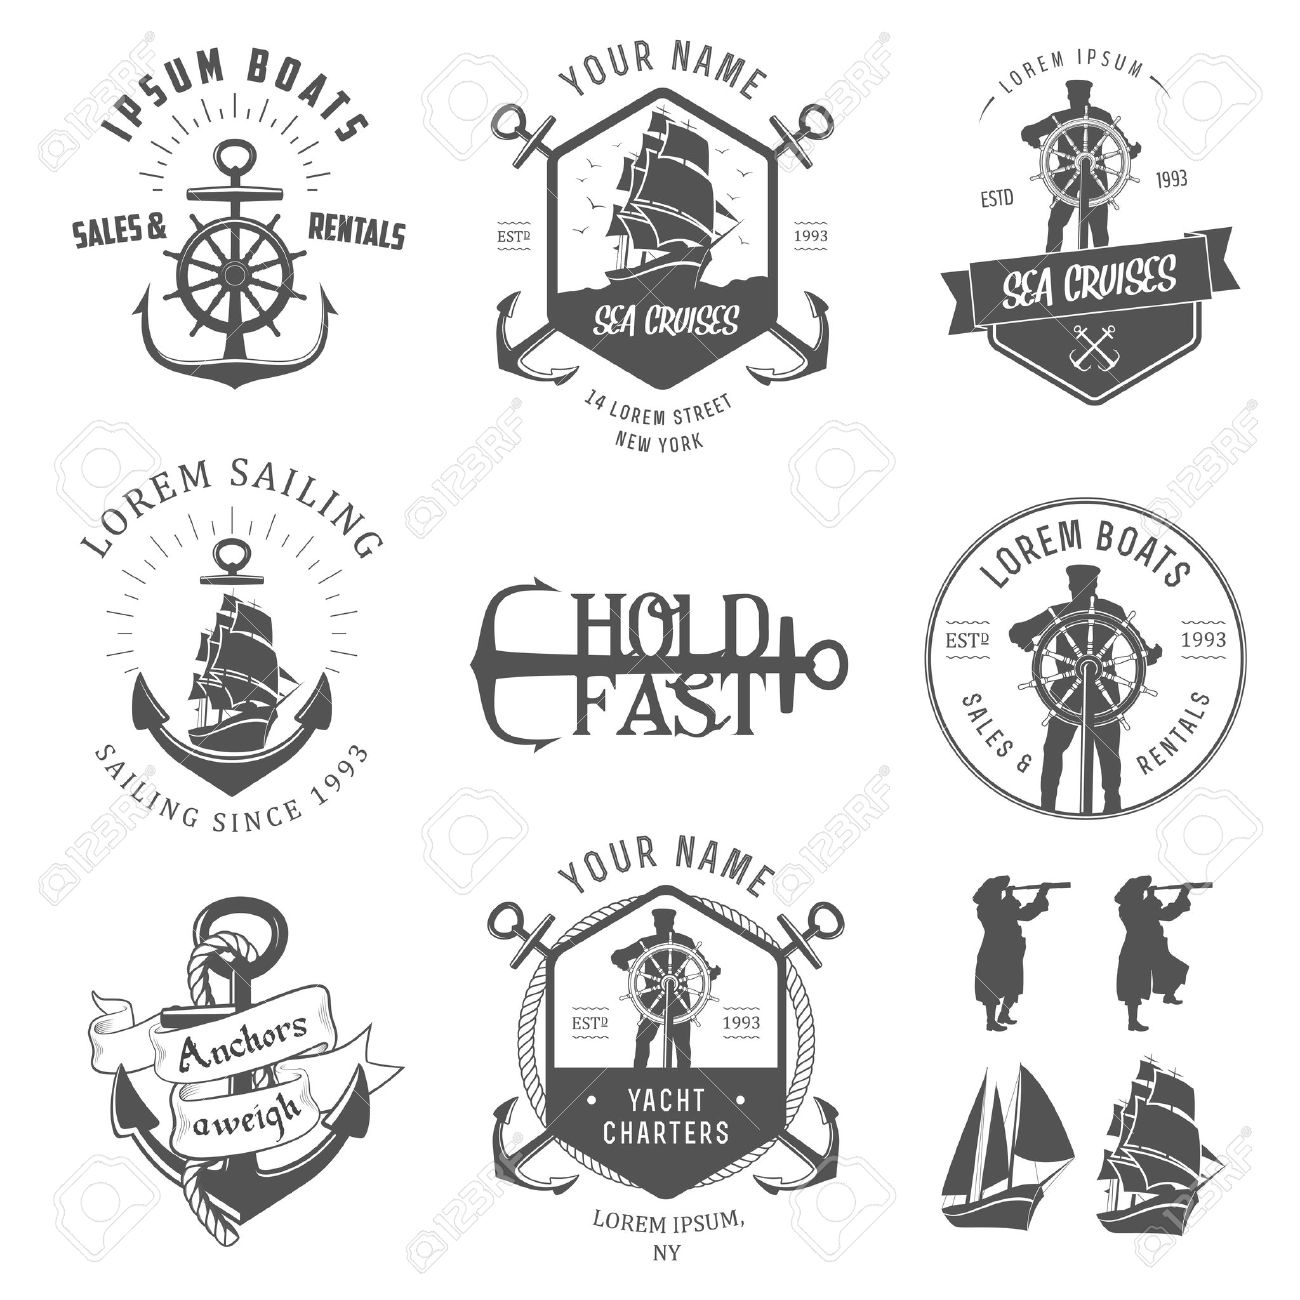 Vintage Nautical Cliparts Free Download Clip Art.